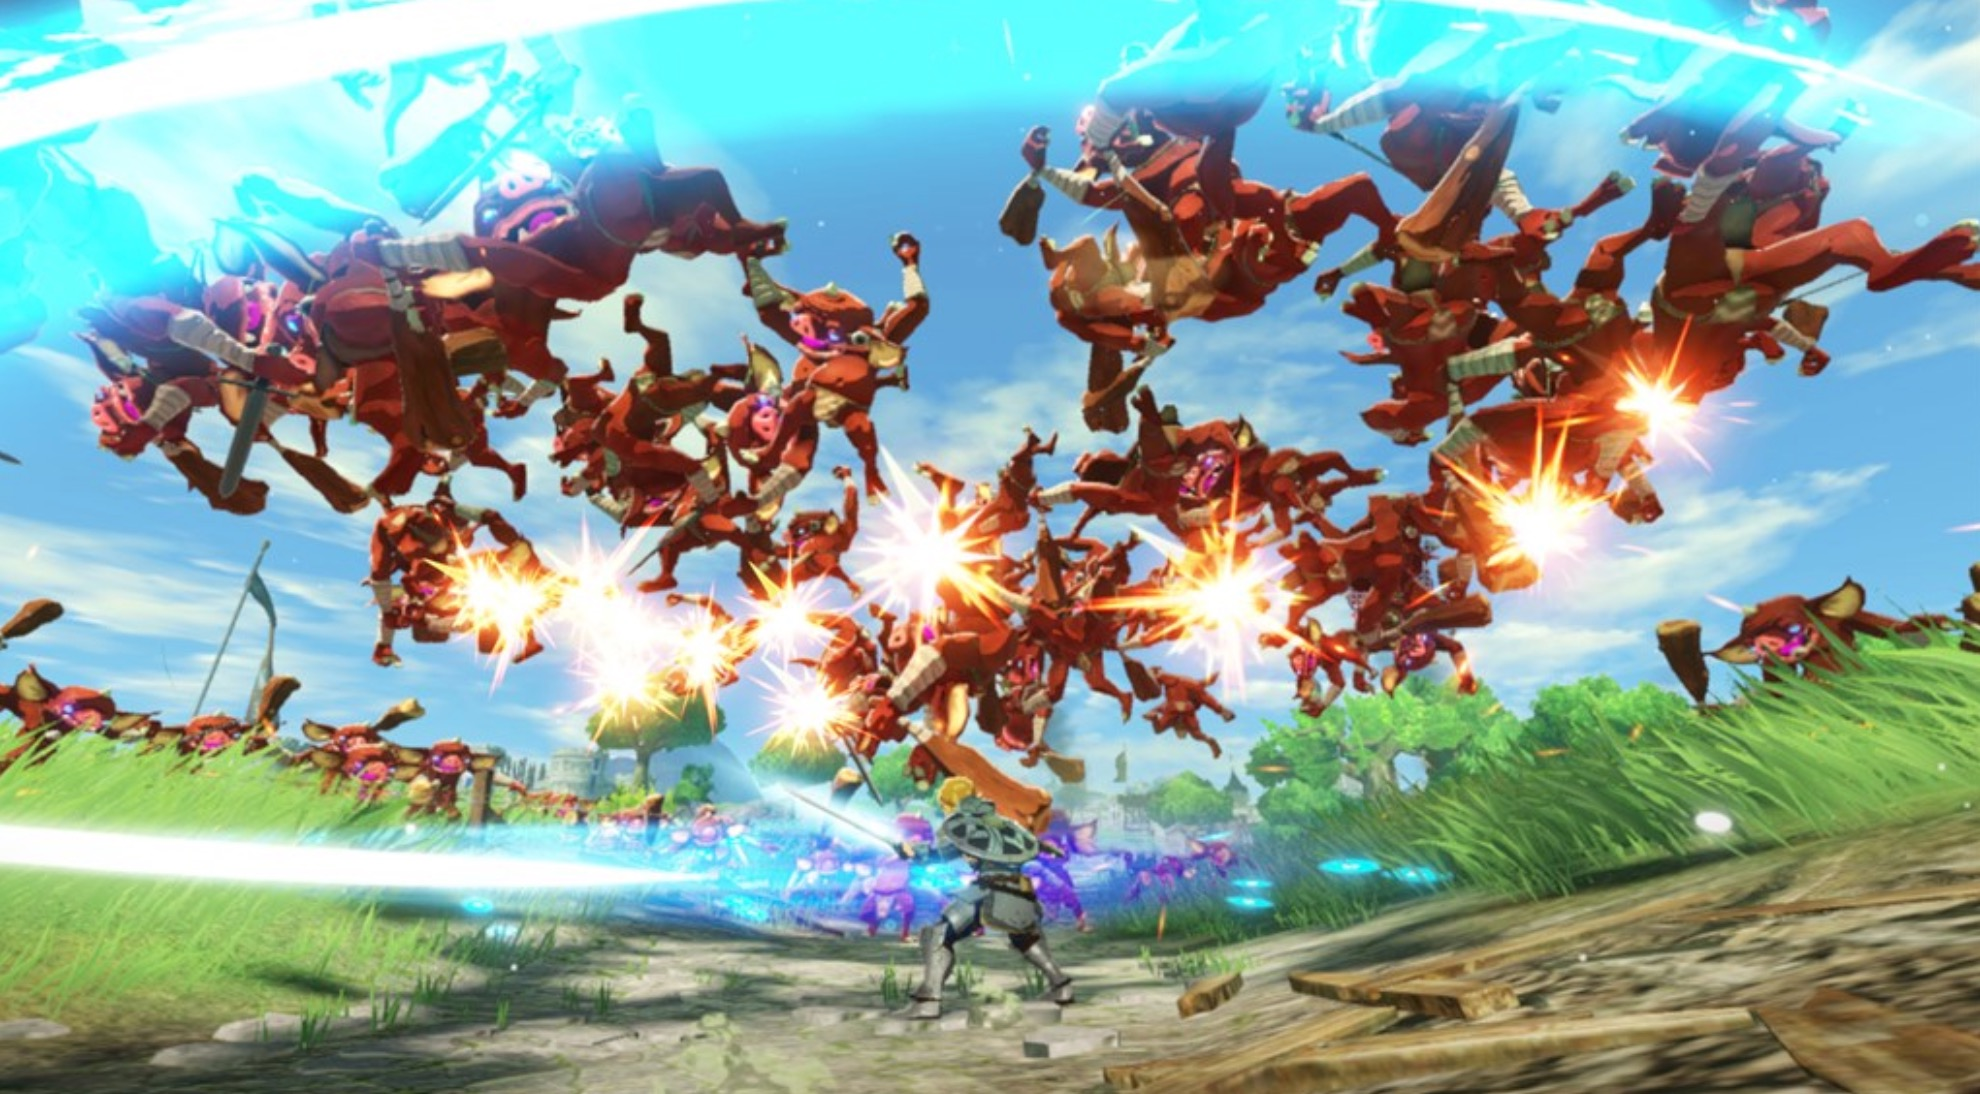 Hyrule Warriors: Age of Calamity Gets New Screenshots Showing off Playable  Characters & More